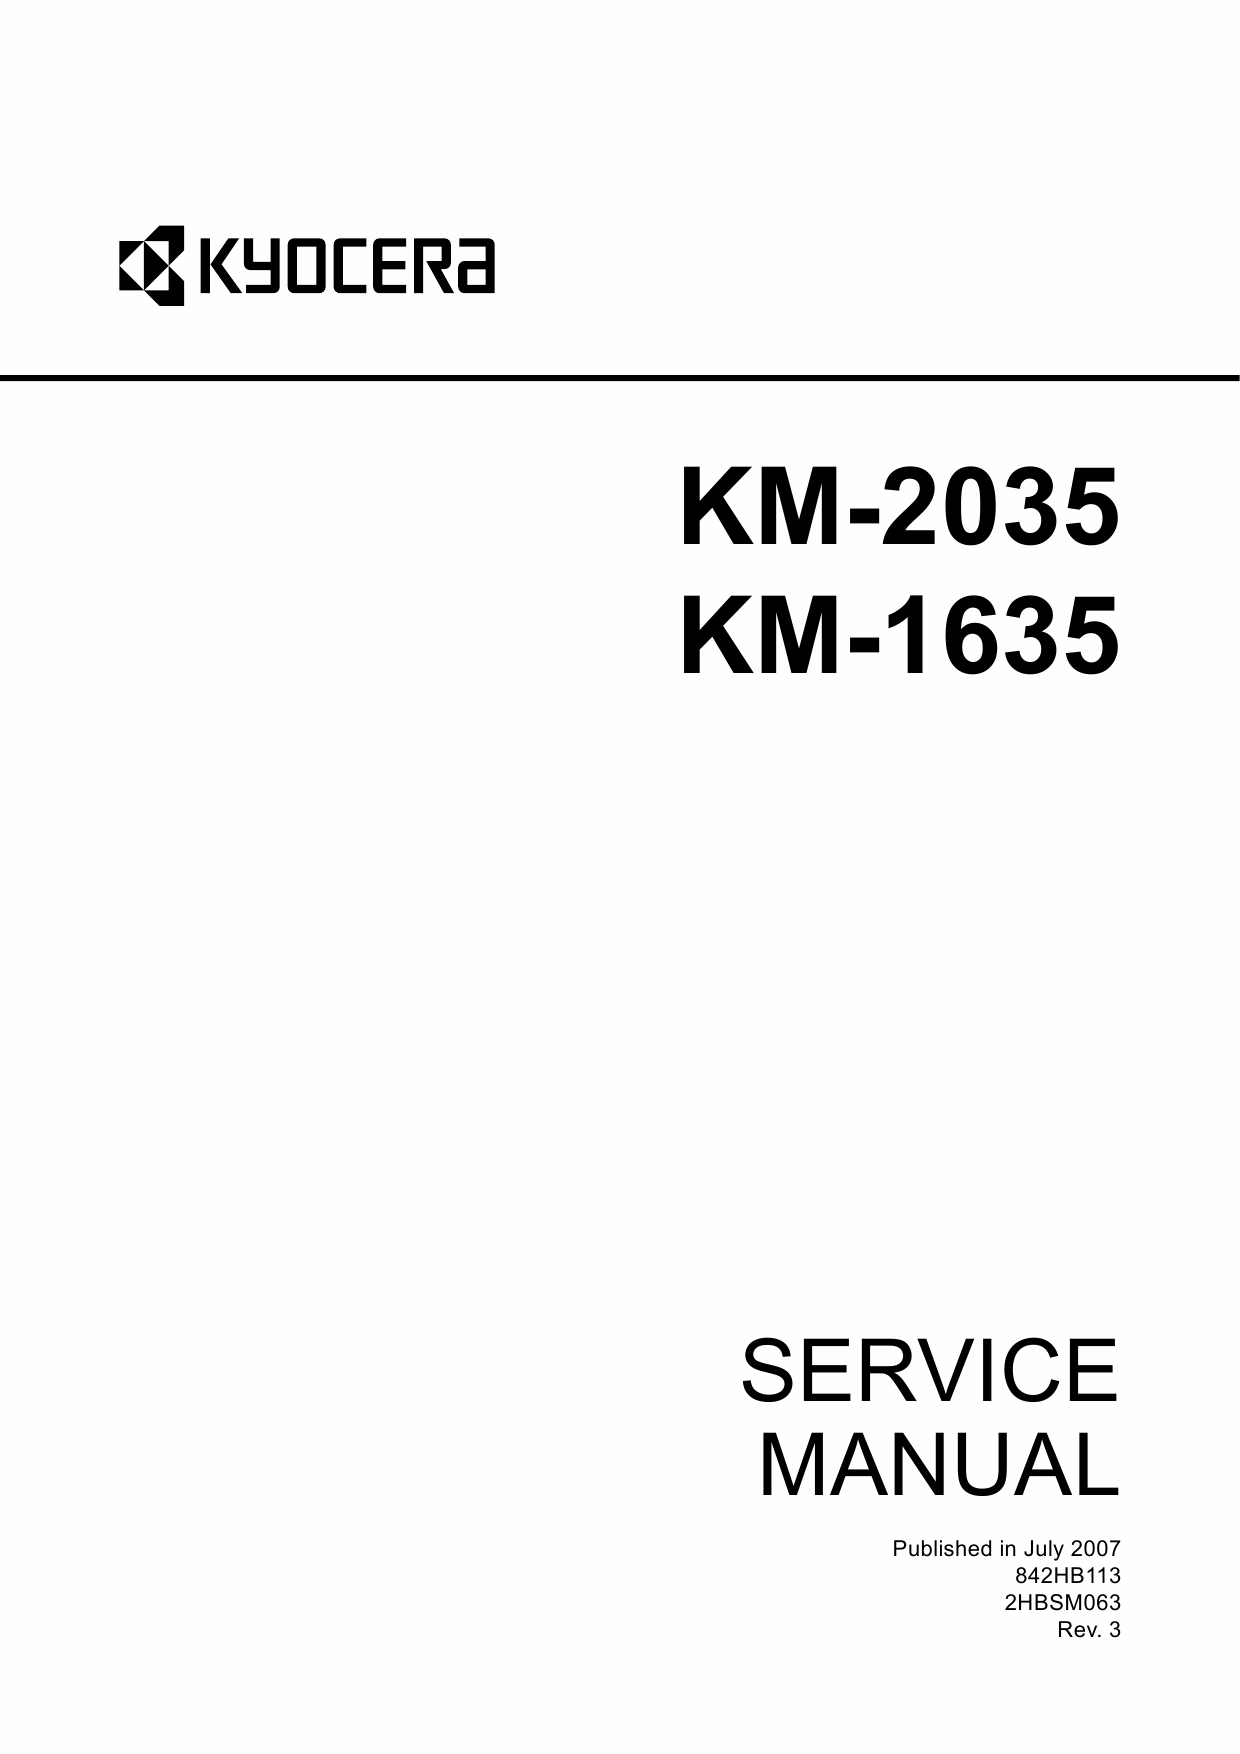 KYOCERA Copier KM-2035 1635 Service Manual-1